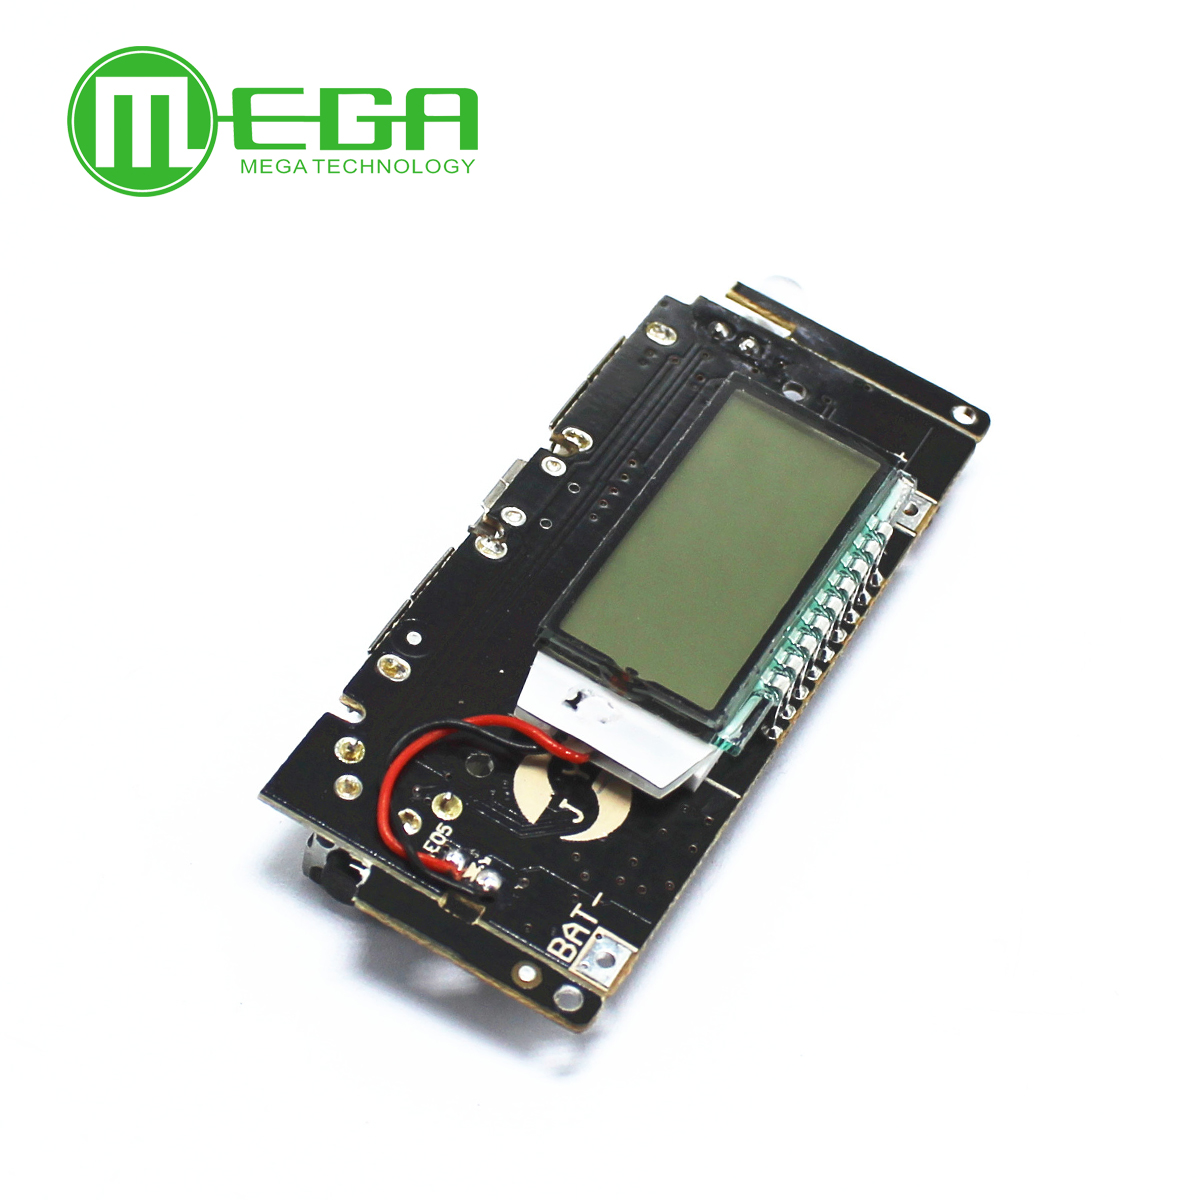 Digital LCD 5V 2A Mobile Power Bank Charge Controller Dual USB 18650 Lithium Battery Charger Board Power Regulator Module PCB image